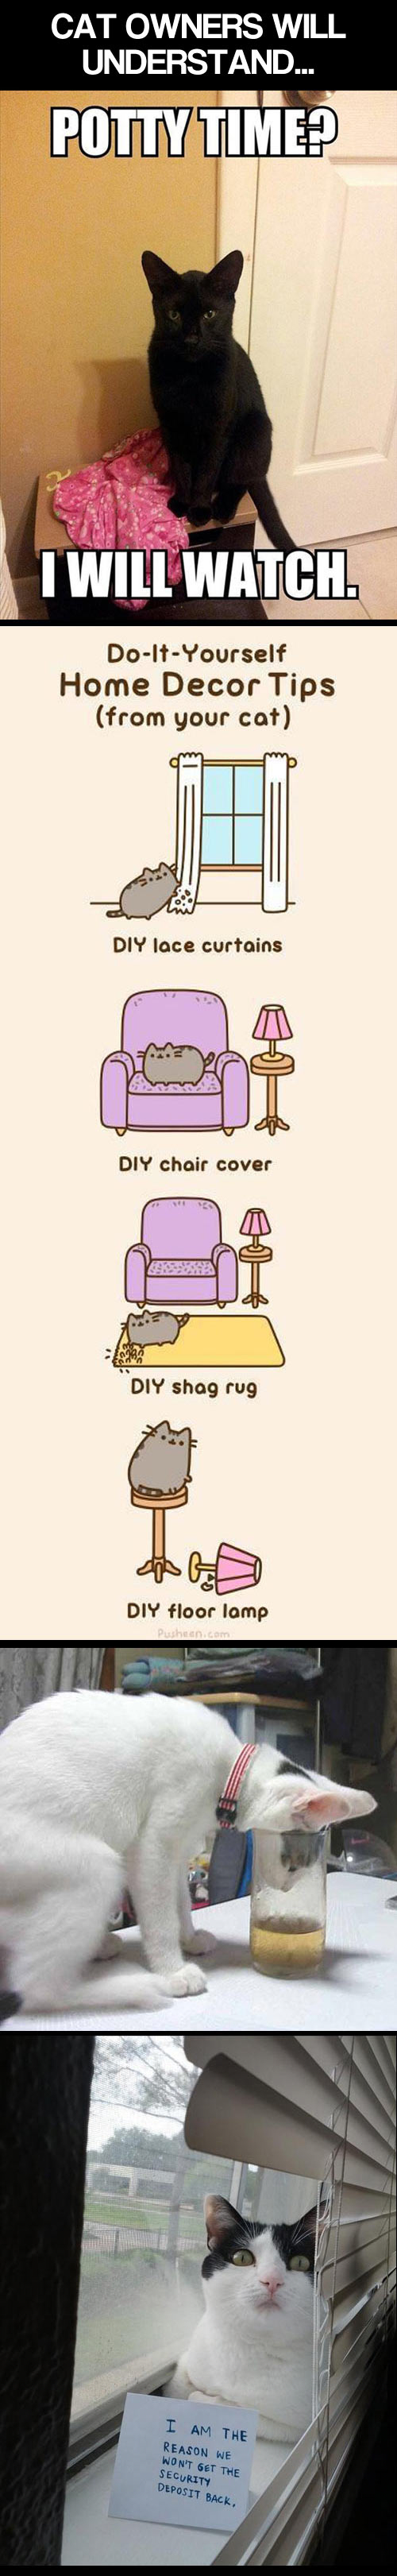 Cat owners will surely understand...